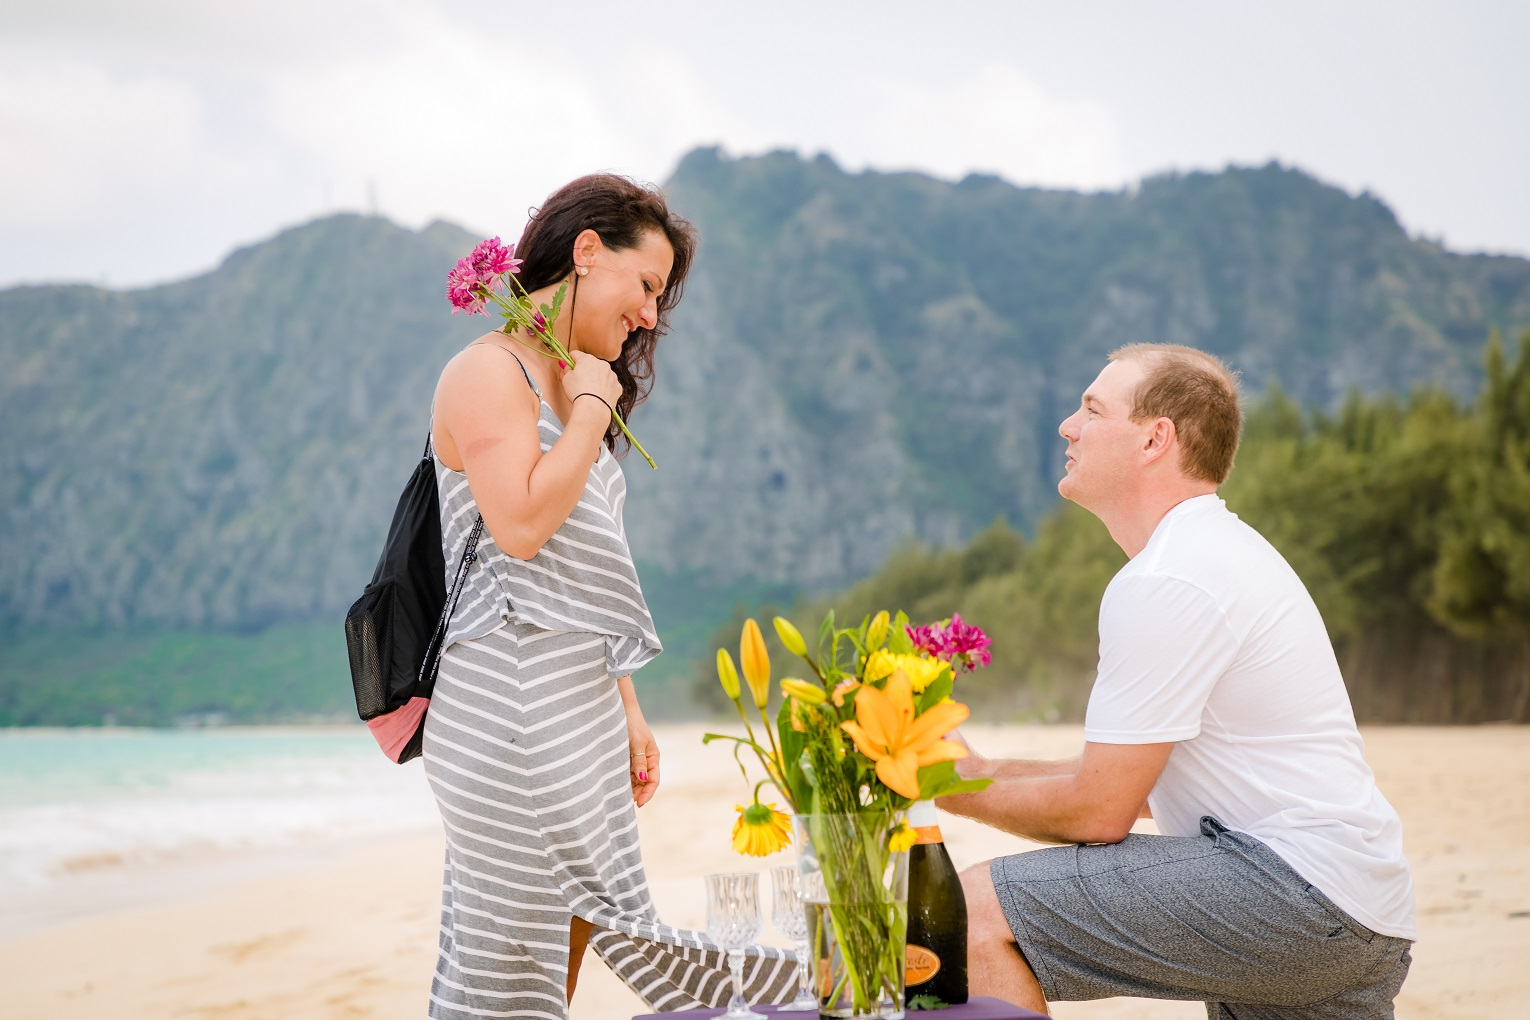 Secret rendezvous on the beach for a romantic surprise proposal!